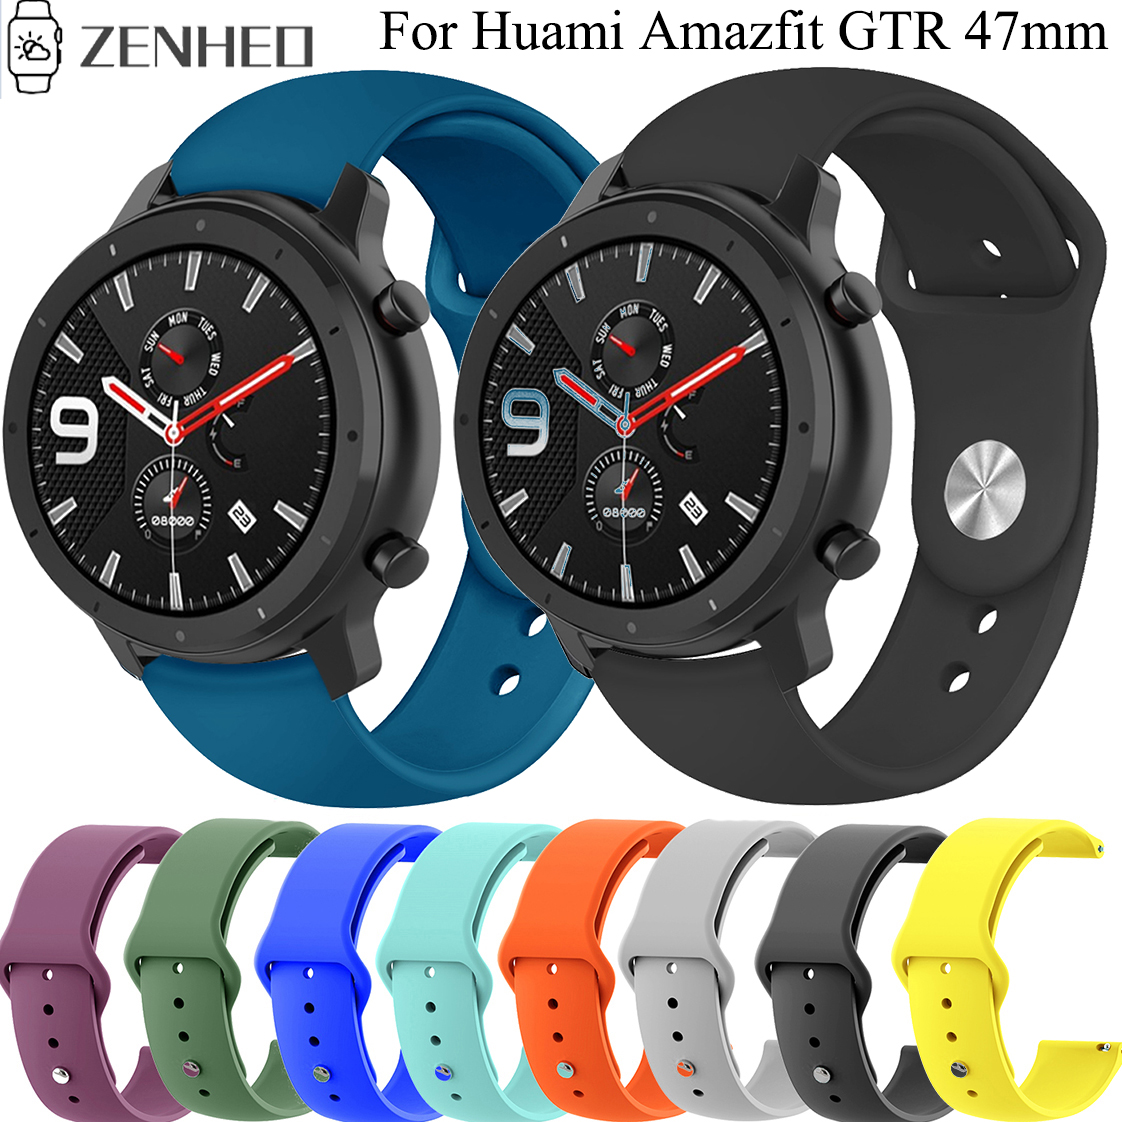 22mm Silicone Band Strap For Huami Amazfit GTR 47mm/Pace/Stratos 2/2S Bracelet Strap For Samsung Galaxy Watch 46mm/Gear S3